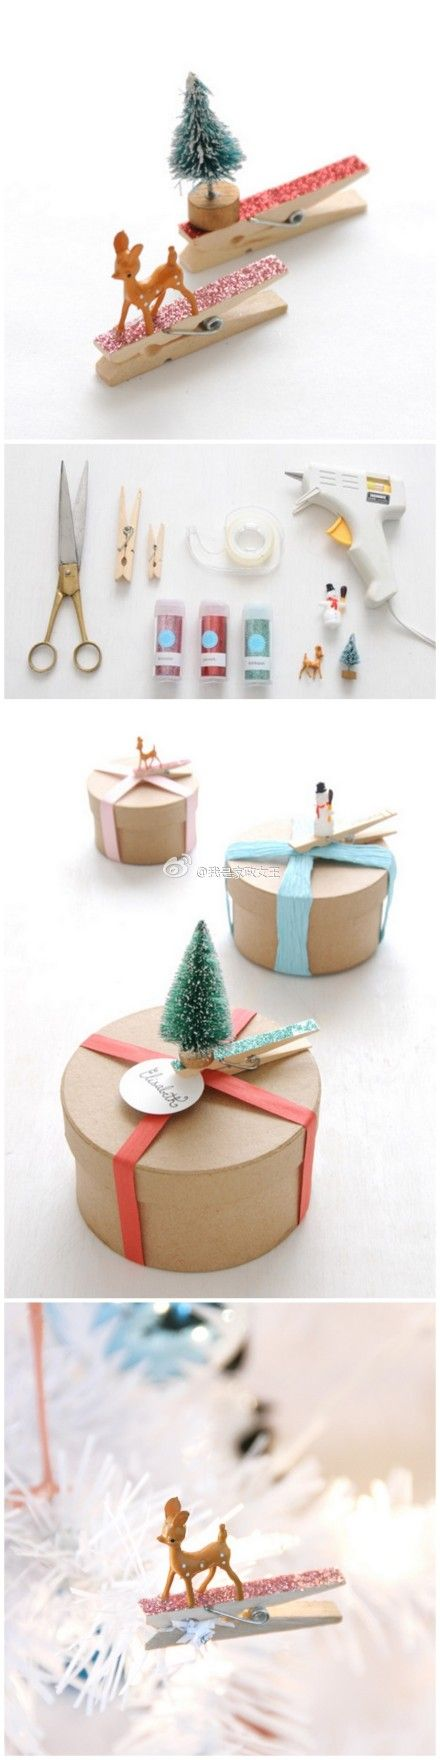 Clothespin Ornament. LOVE this